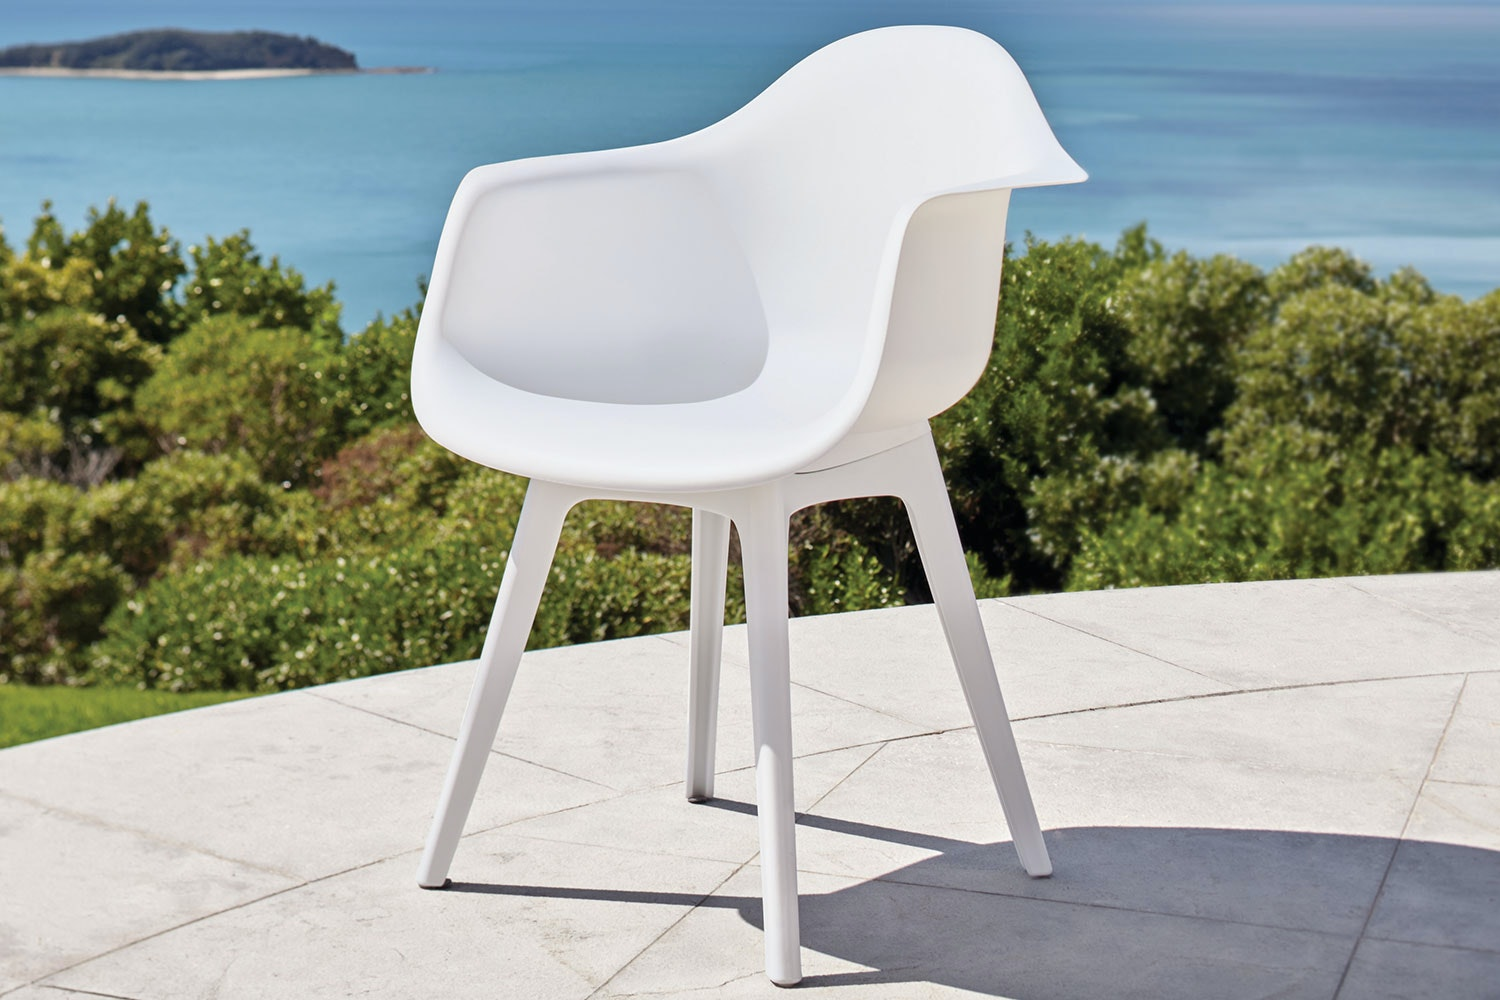 Floret Outdoor Dining Chair - White